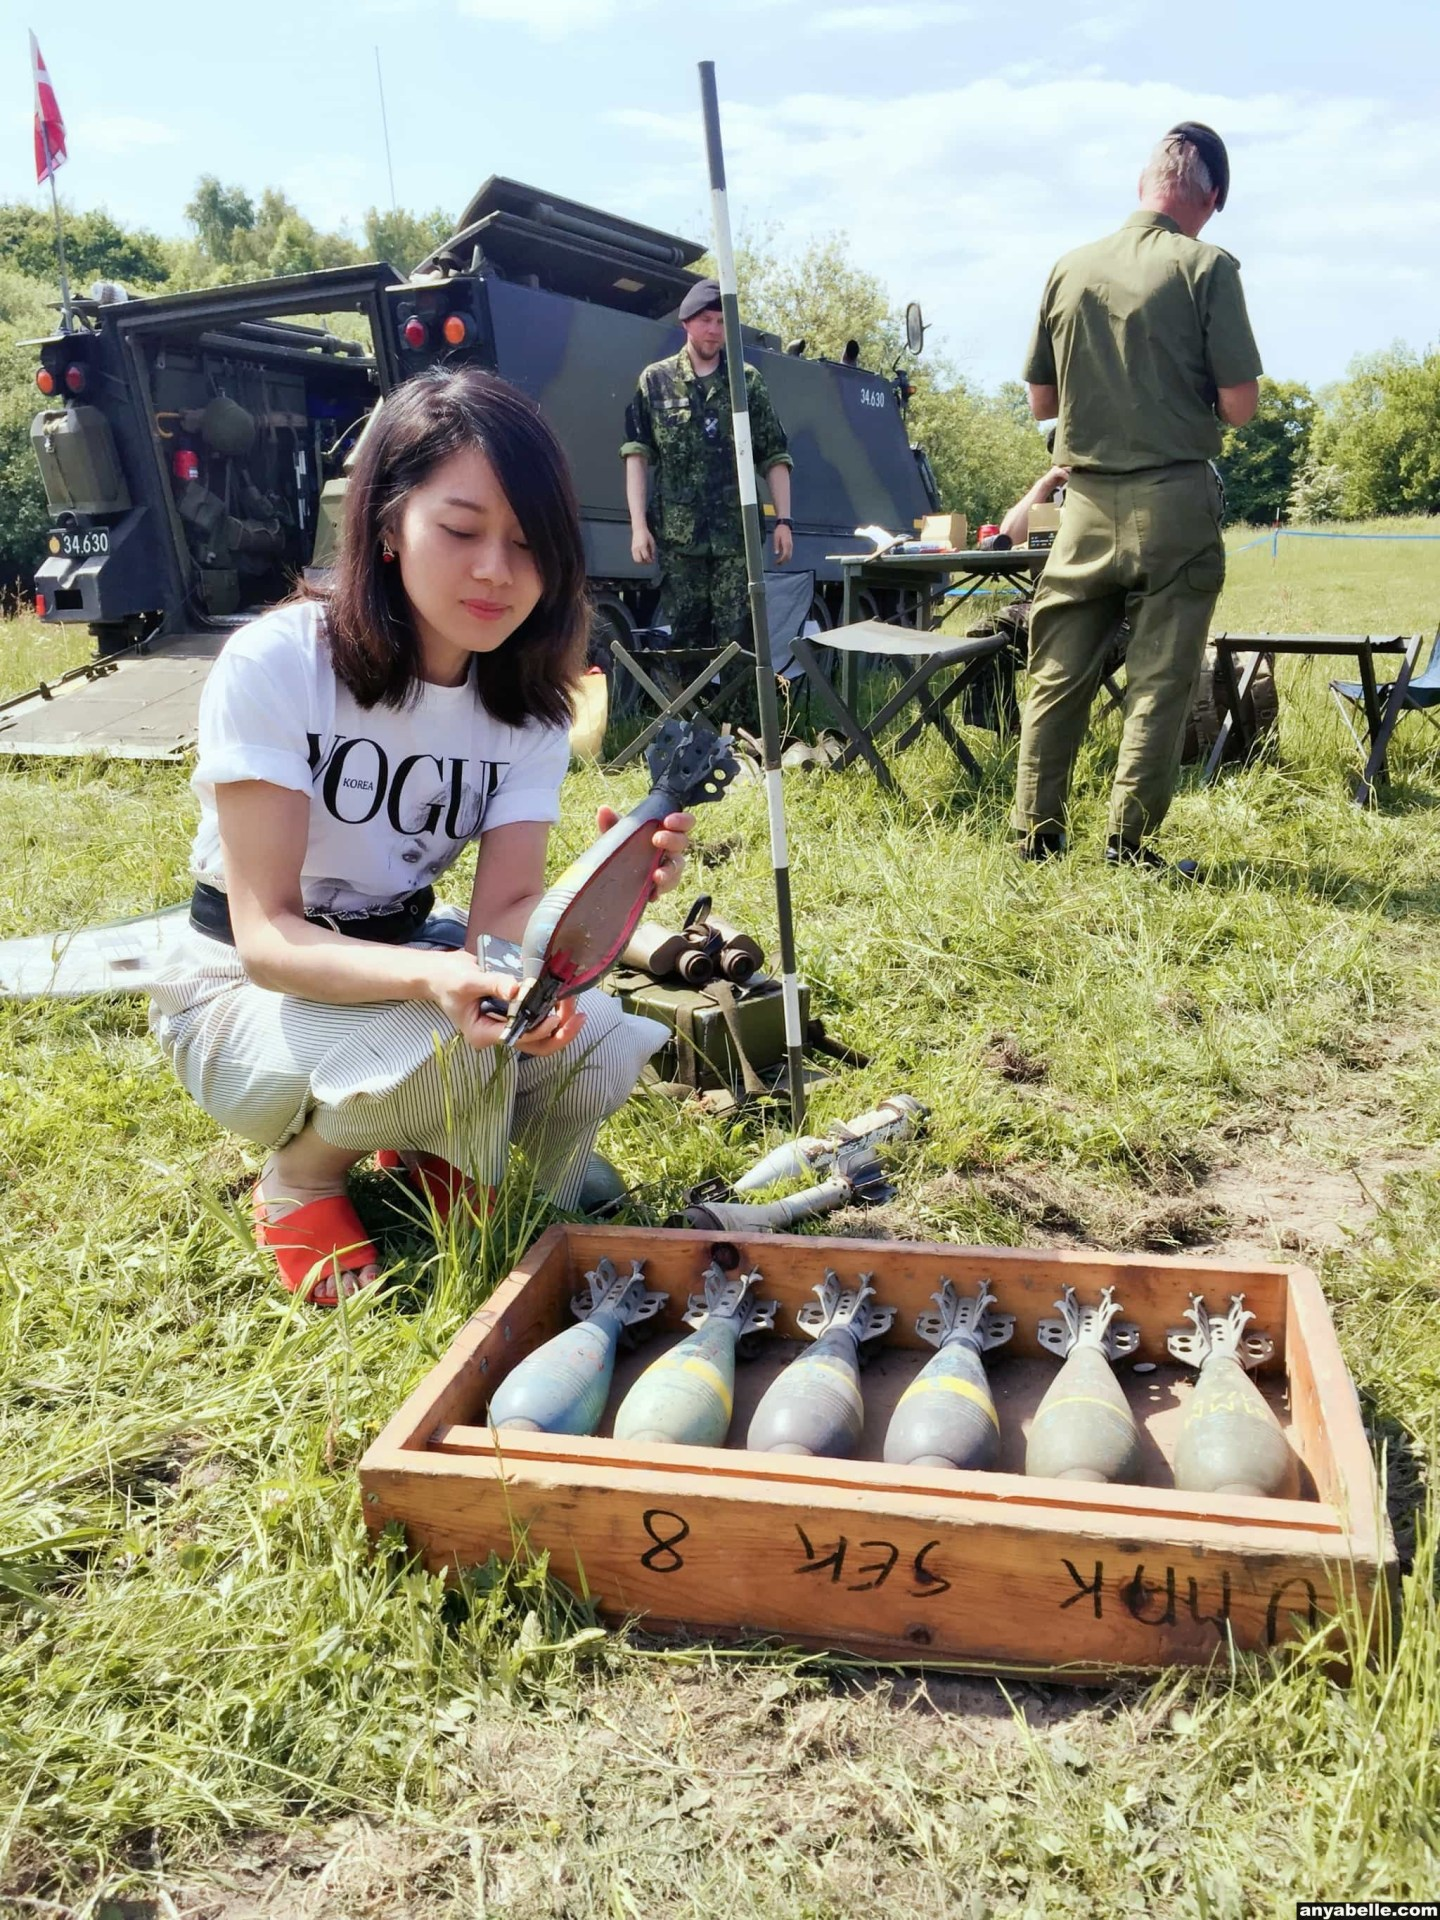 ARMY OPEN HOUSE, AOH, Barracks Open Day,Weaponry,Tank, Bomb,Cannon OOTD,Outfit of the day , Instagram, Blogger,Street Style, Style,Bamboo bag, Lifestyle, Outfit, Fashion,Europe, 兵营开放日,军队开放日,武器装备,坦克,炸弹,大炮, 每日穿搭,时尚博主,生活方式,街拍,风格, 穿搭,时尚, Ins风, ,欧洲